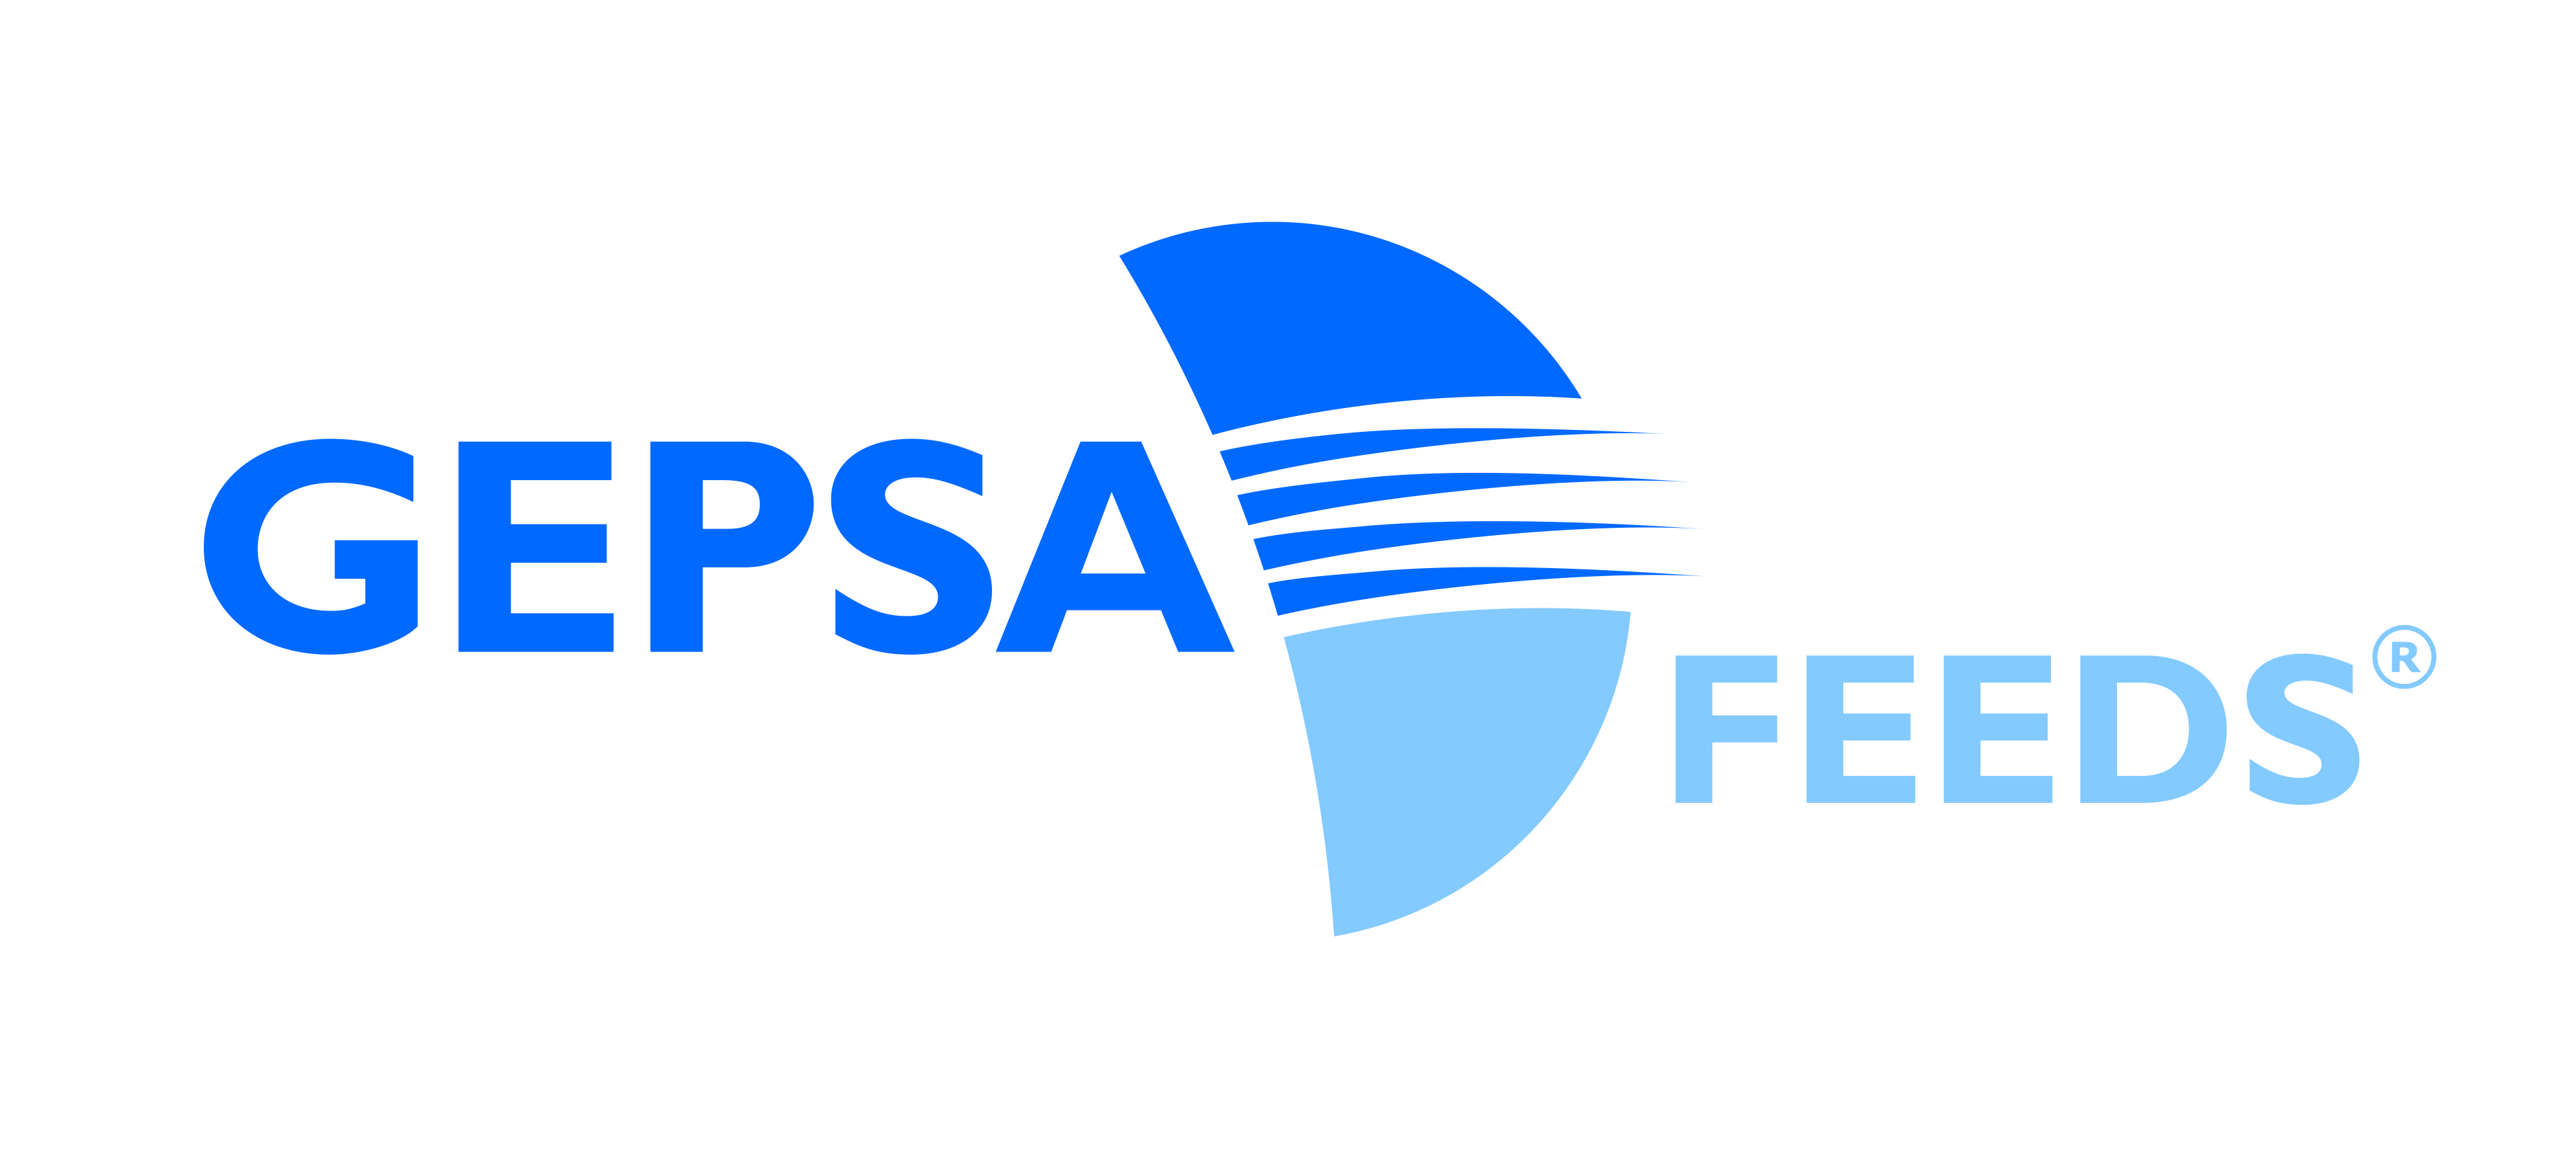 LOGO GEPSA FEEDS COLOR sobre blanco